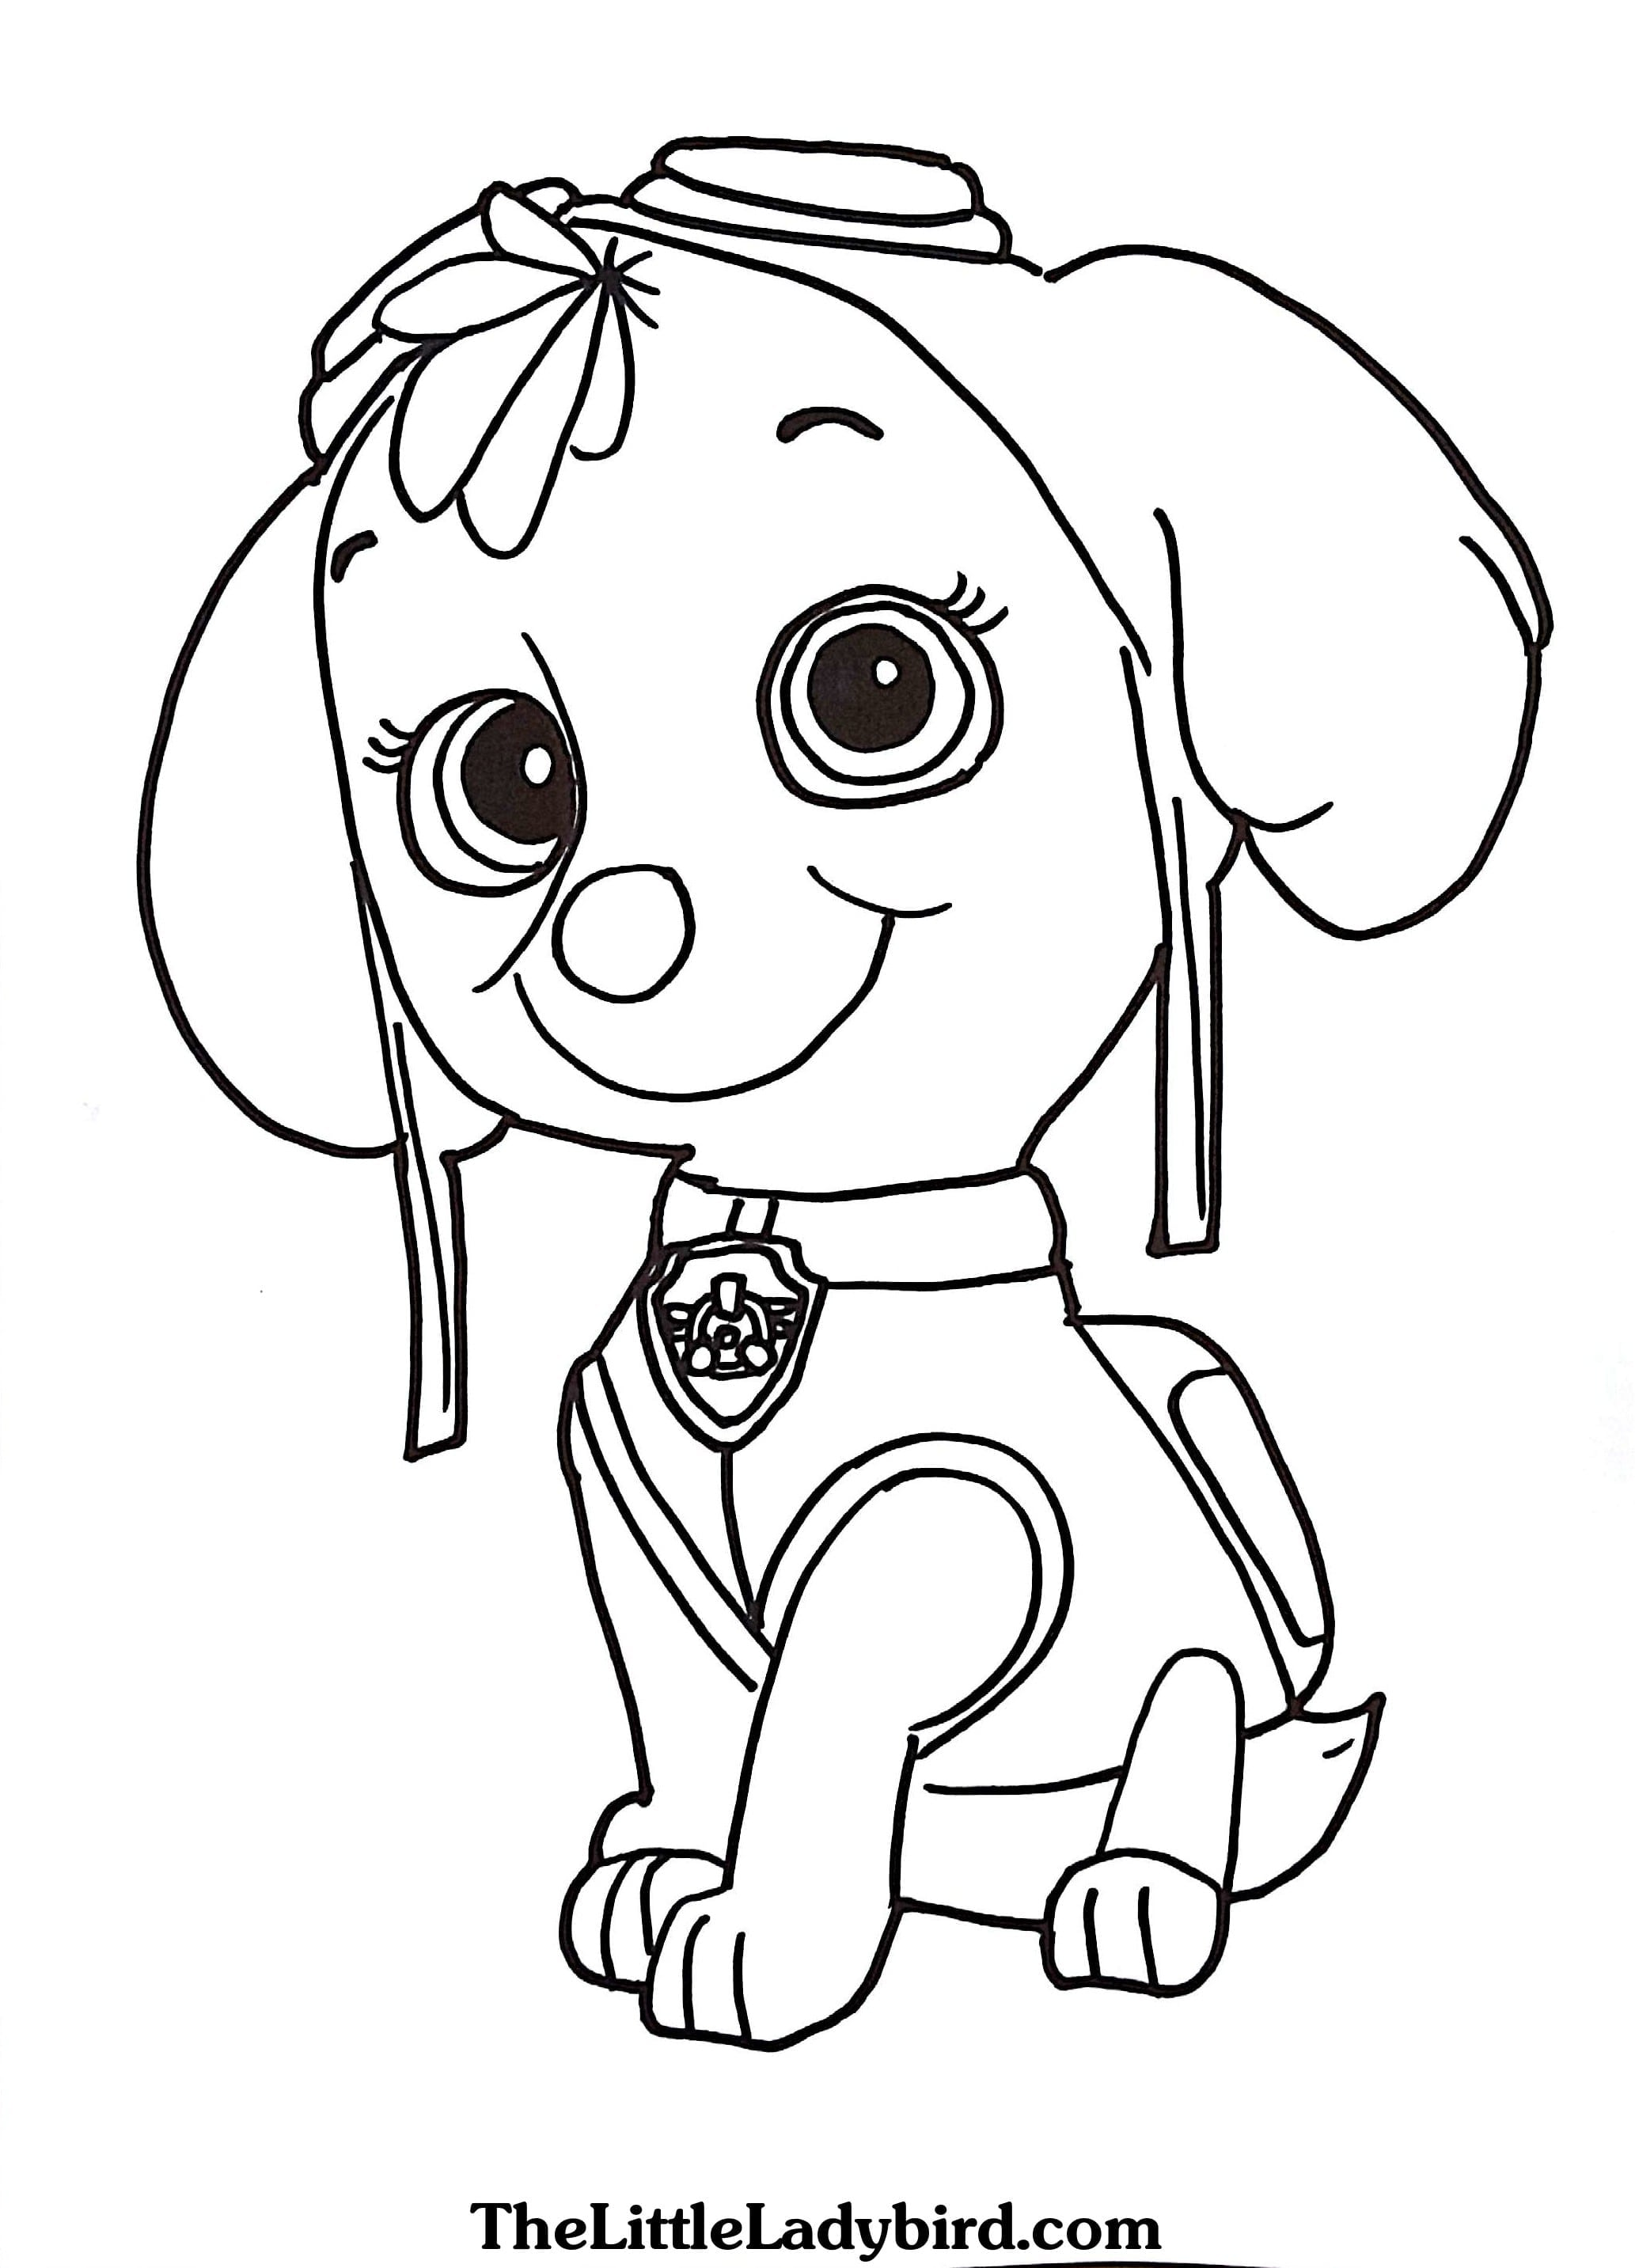 Free Paw Patrol Coloring Pages Coloriage Pat Patrouille 6 Jpg 1000